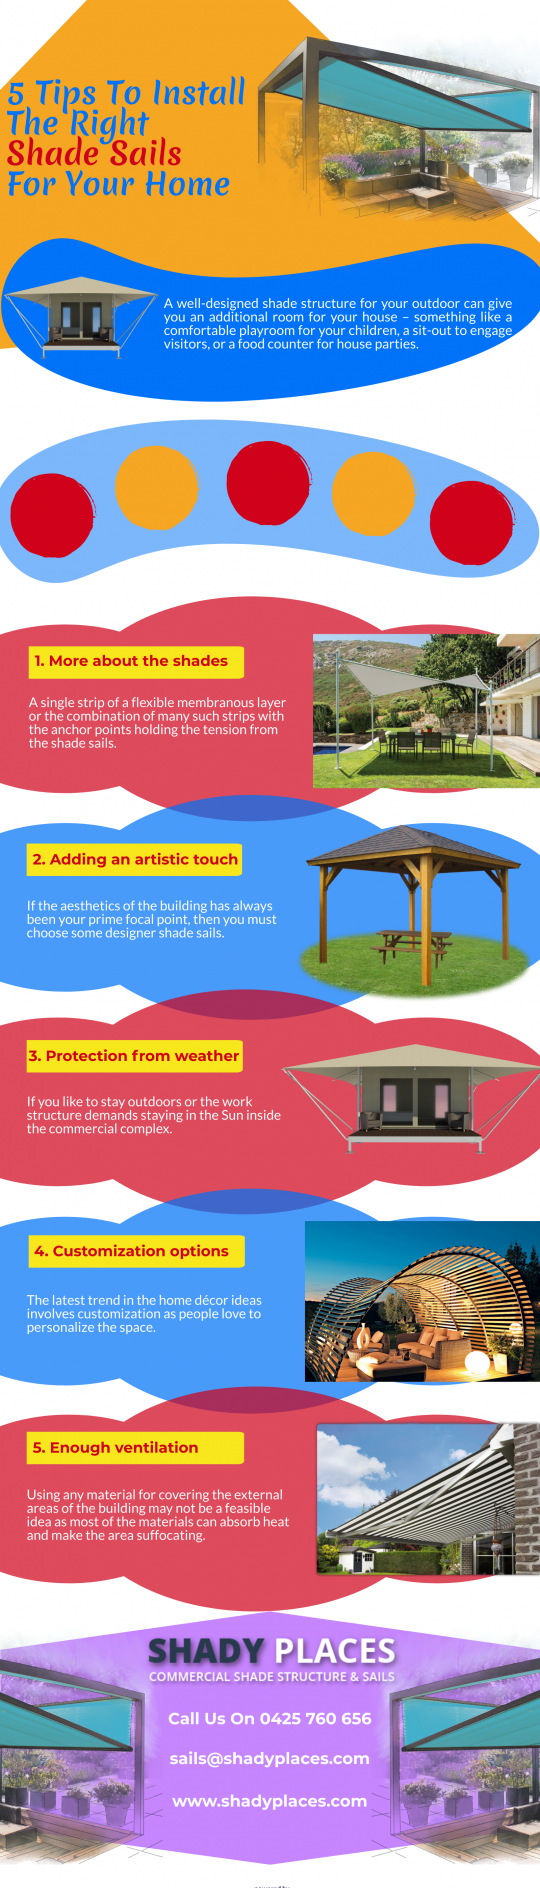 5 Tips To Install The Right Shade Sails For Your Home